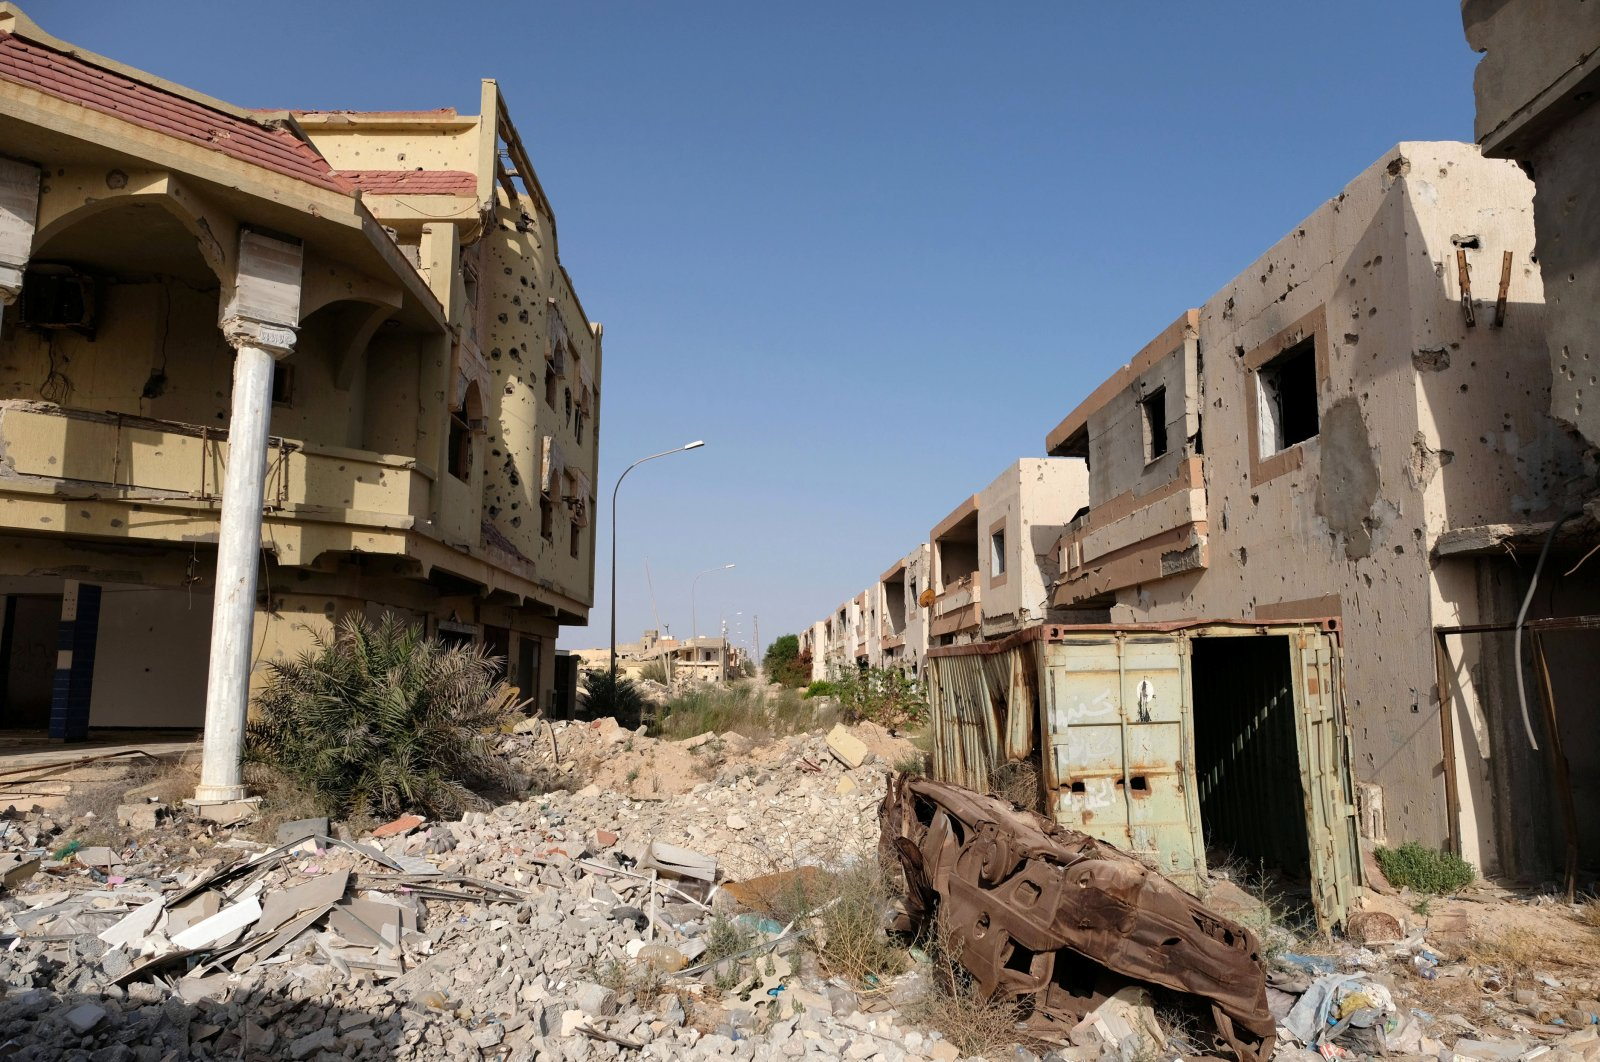 Buildings destroyed during past fighting with Daesh militants are seen in Sirte, Libya, Aug. 18, 2020. (REUTERS Photo)